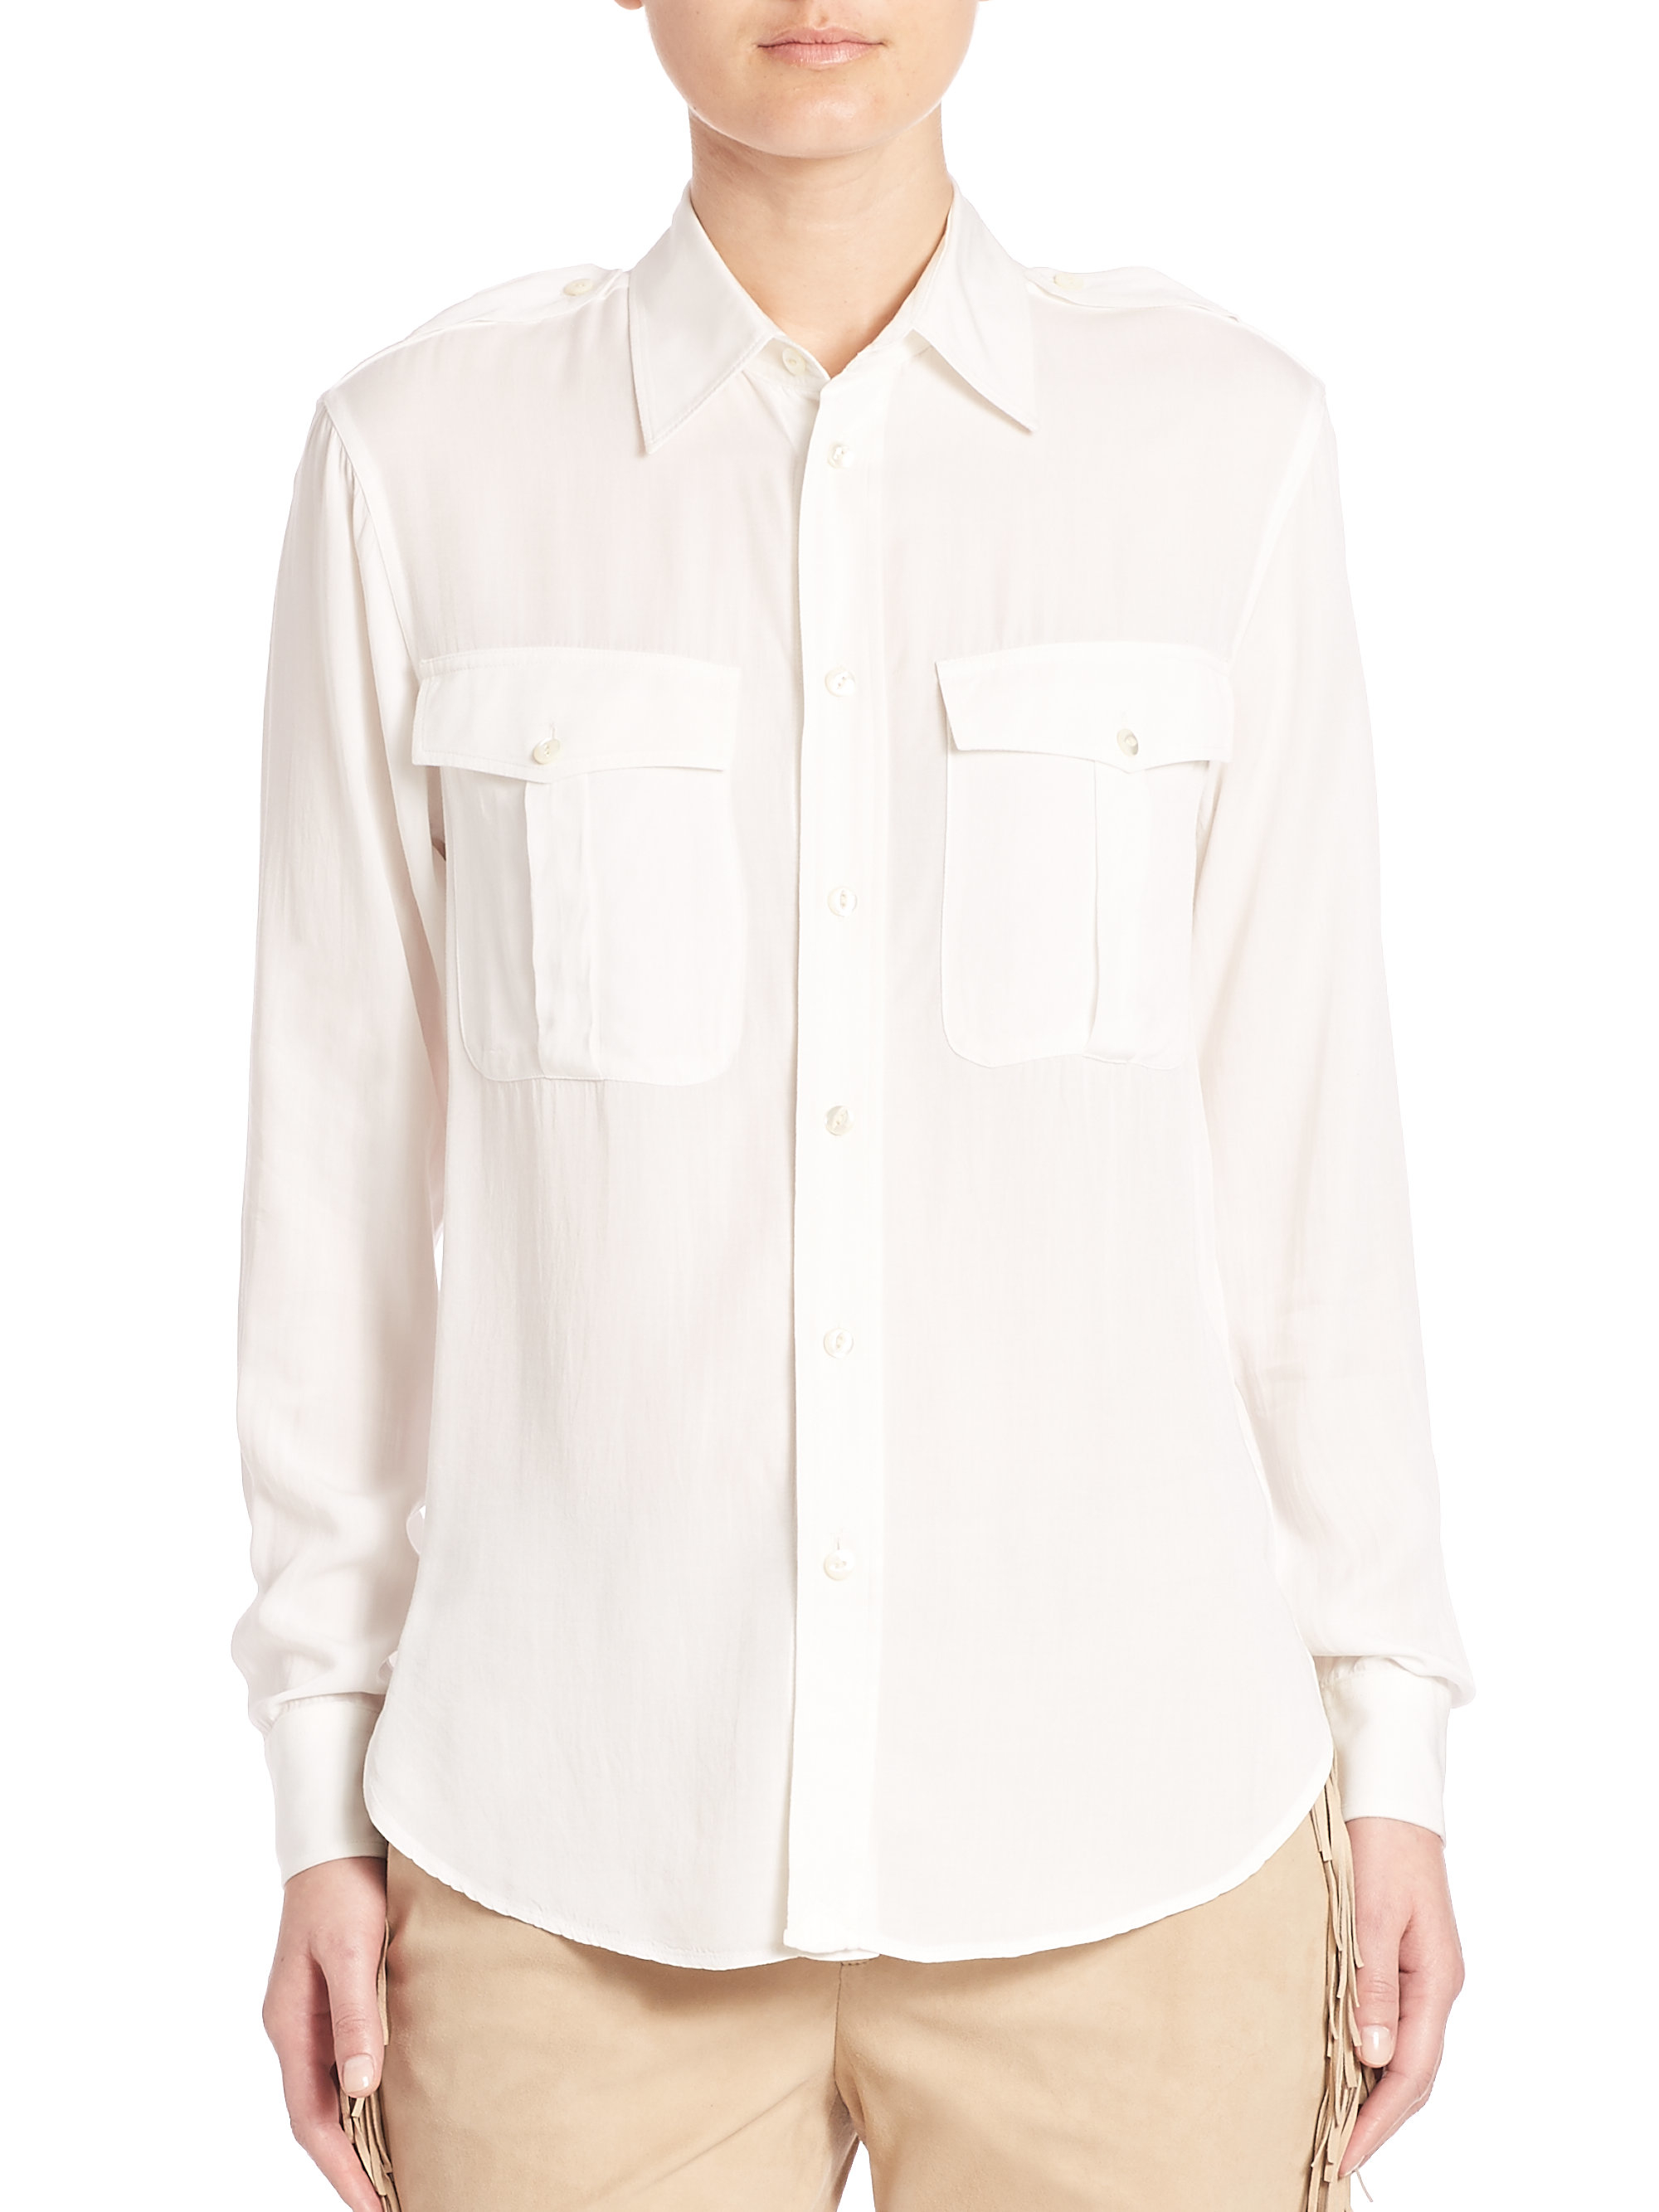 Polo ralph lauren twill button up shirt in white lyst for Womens button up polo shirts